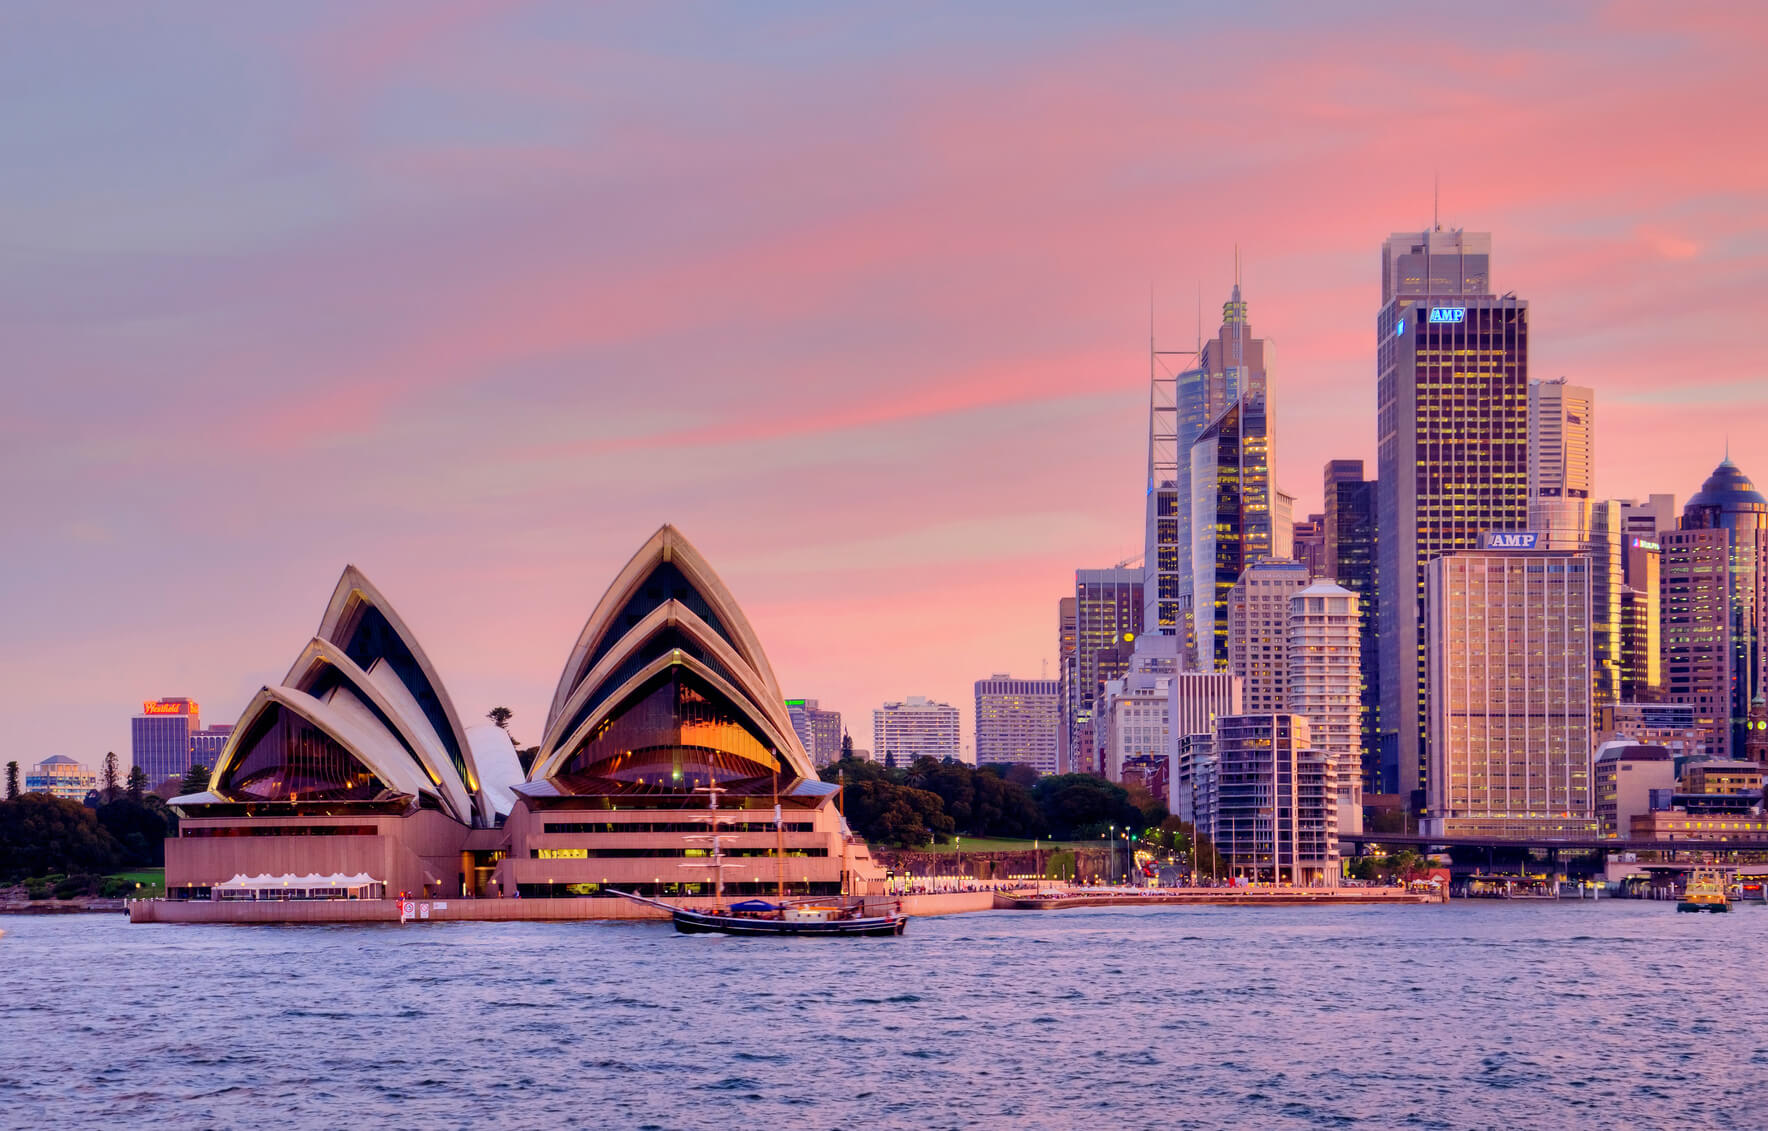 HOT!! Non-stop from Beijing, China to Sydney, Australia for only $348 USD roundtrip